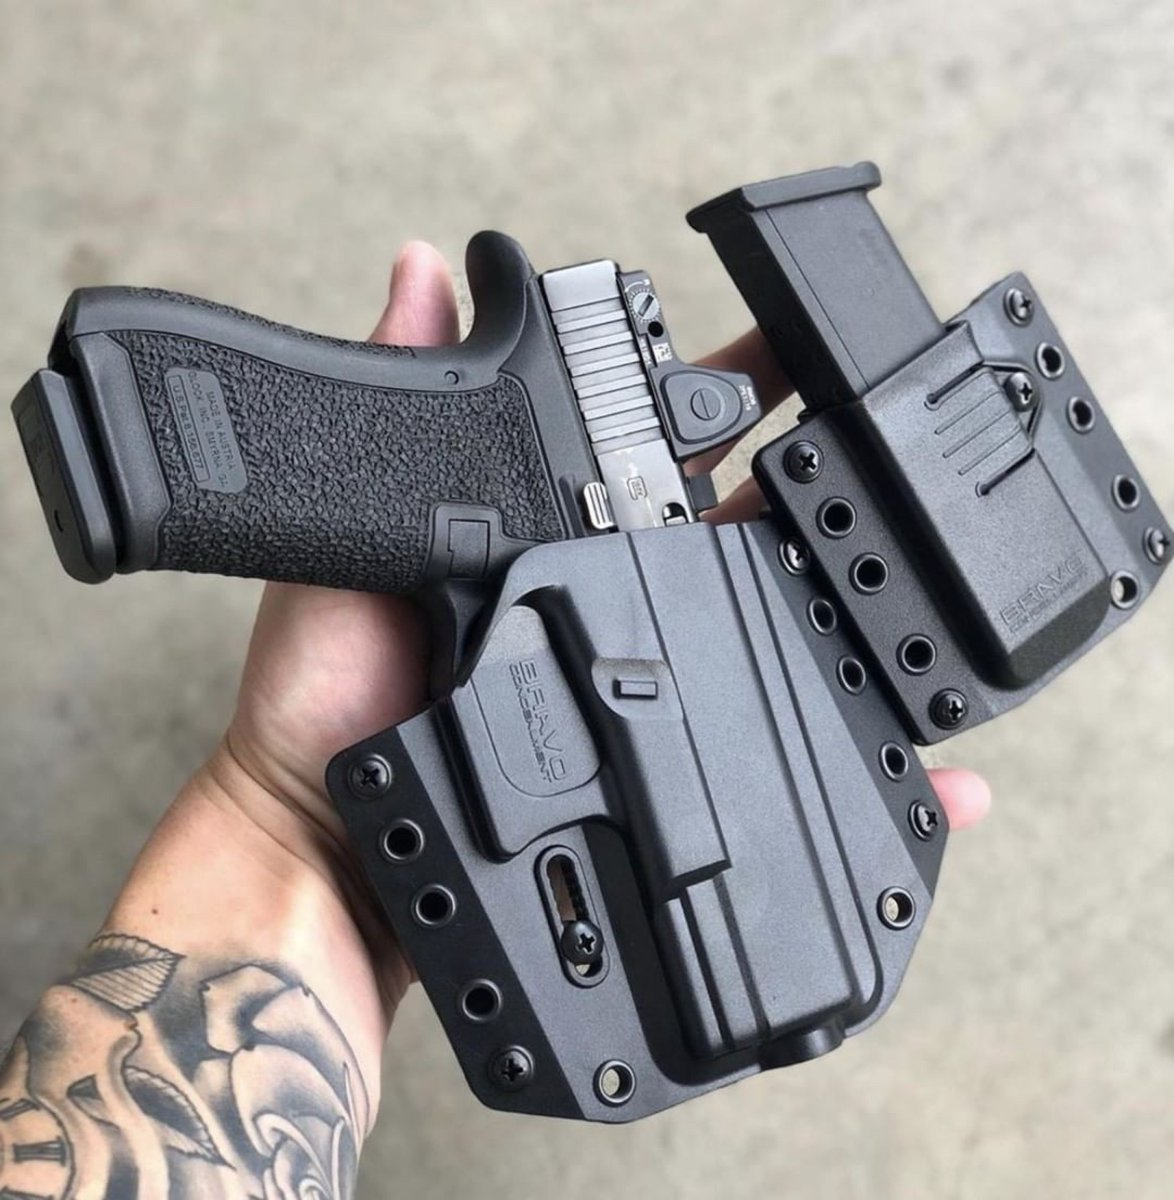 OWB setup from @bravoconcealment, when I don't appendix carry this is my go to setup now on hikes and business attire.⠀ .⠀ Repost from @bryan_gunner541⠀ .⠀ #kydexholster #bravoconcealment #glock #glock19 #glock45 #2a #pewpewlife #concealedcarrypic.twitter.com/C04kXlUnK6